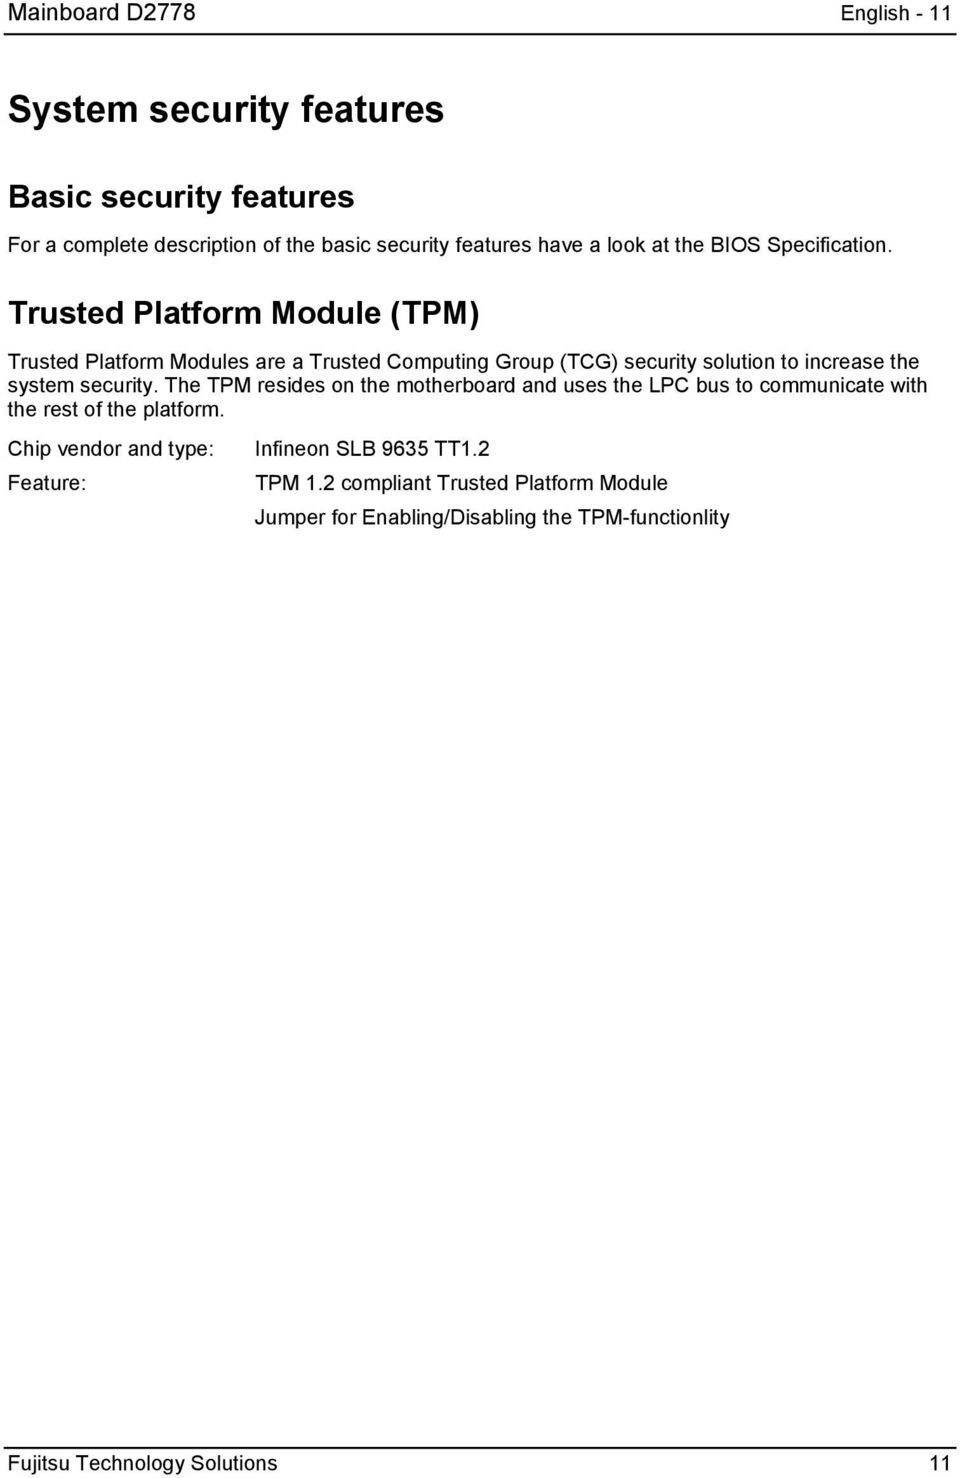 Trusted Platform Module (TPM) Trusted Platform Modules are a Trusted Computing Group (TCG) security solution to increase the system security.